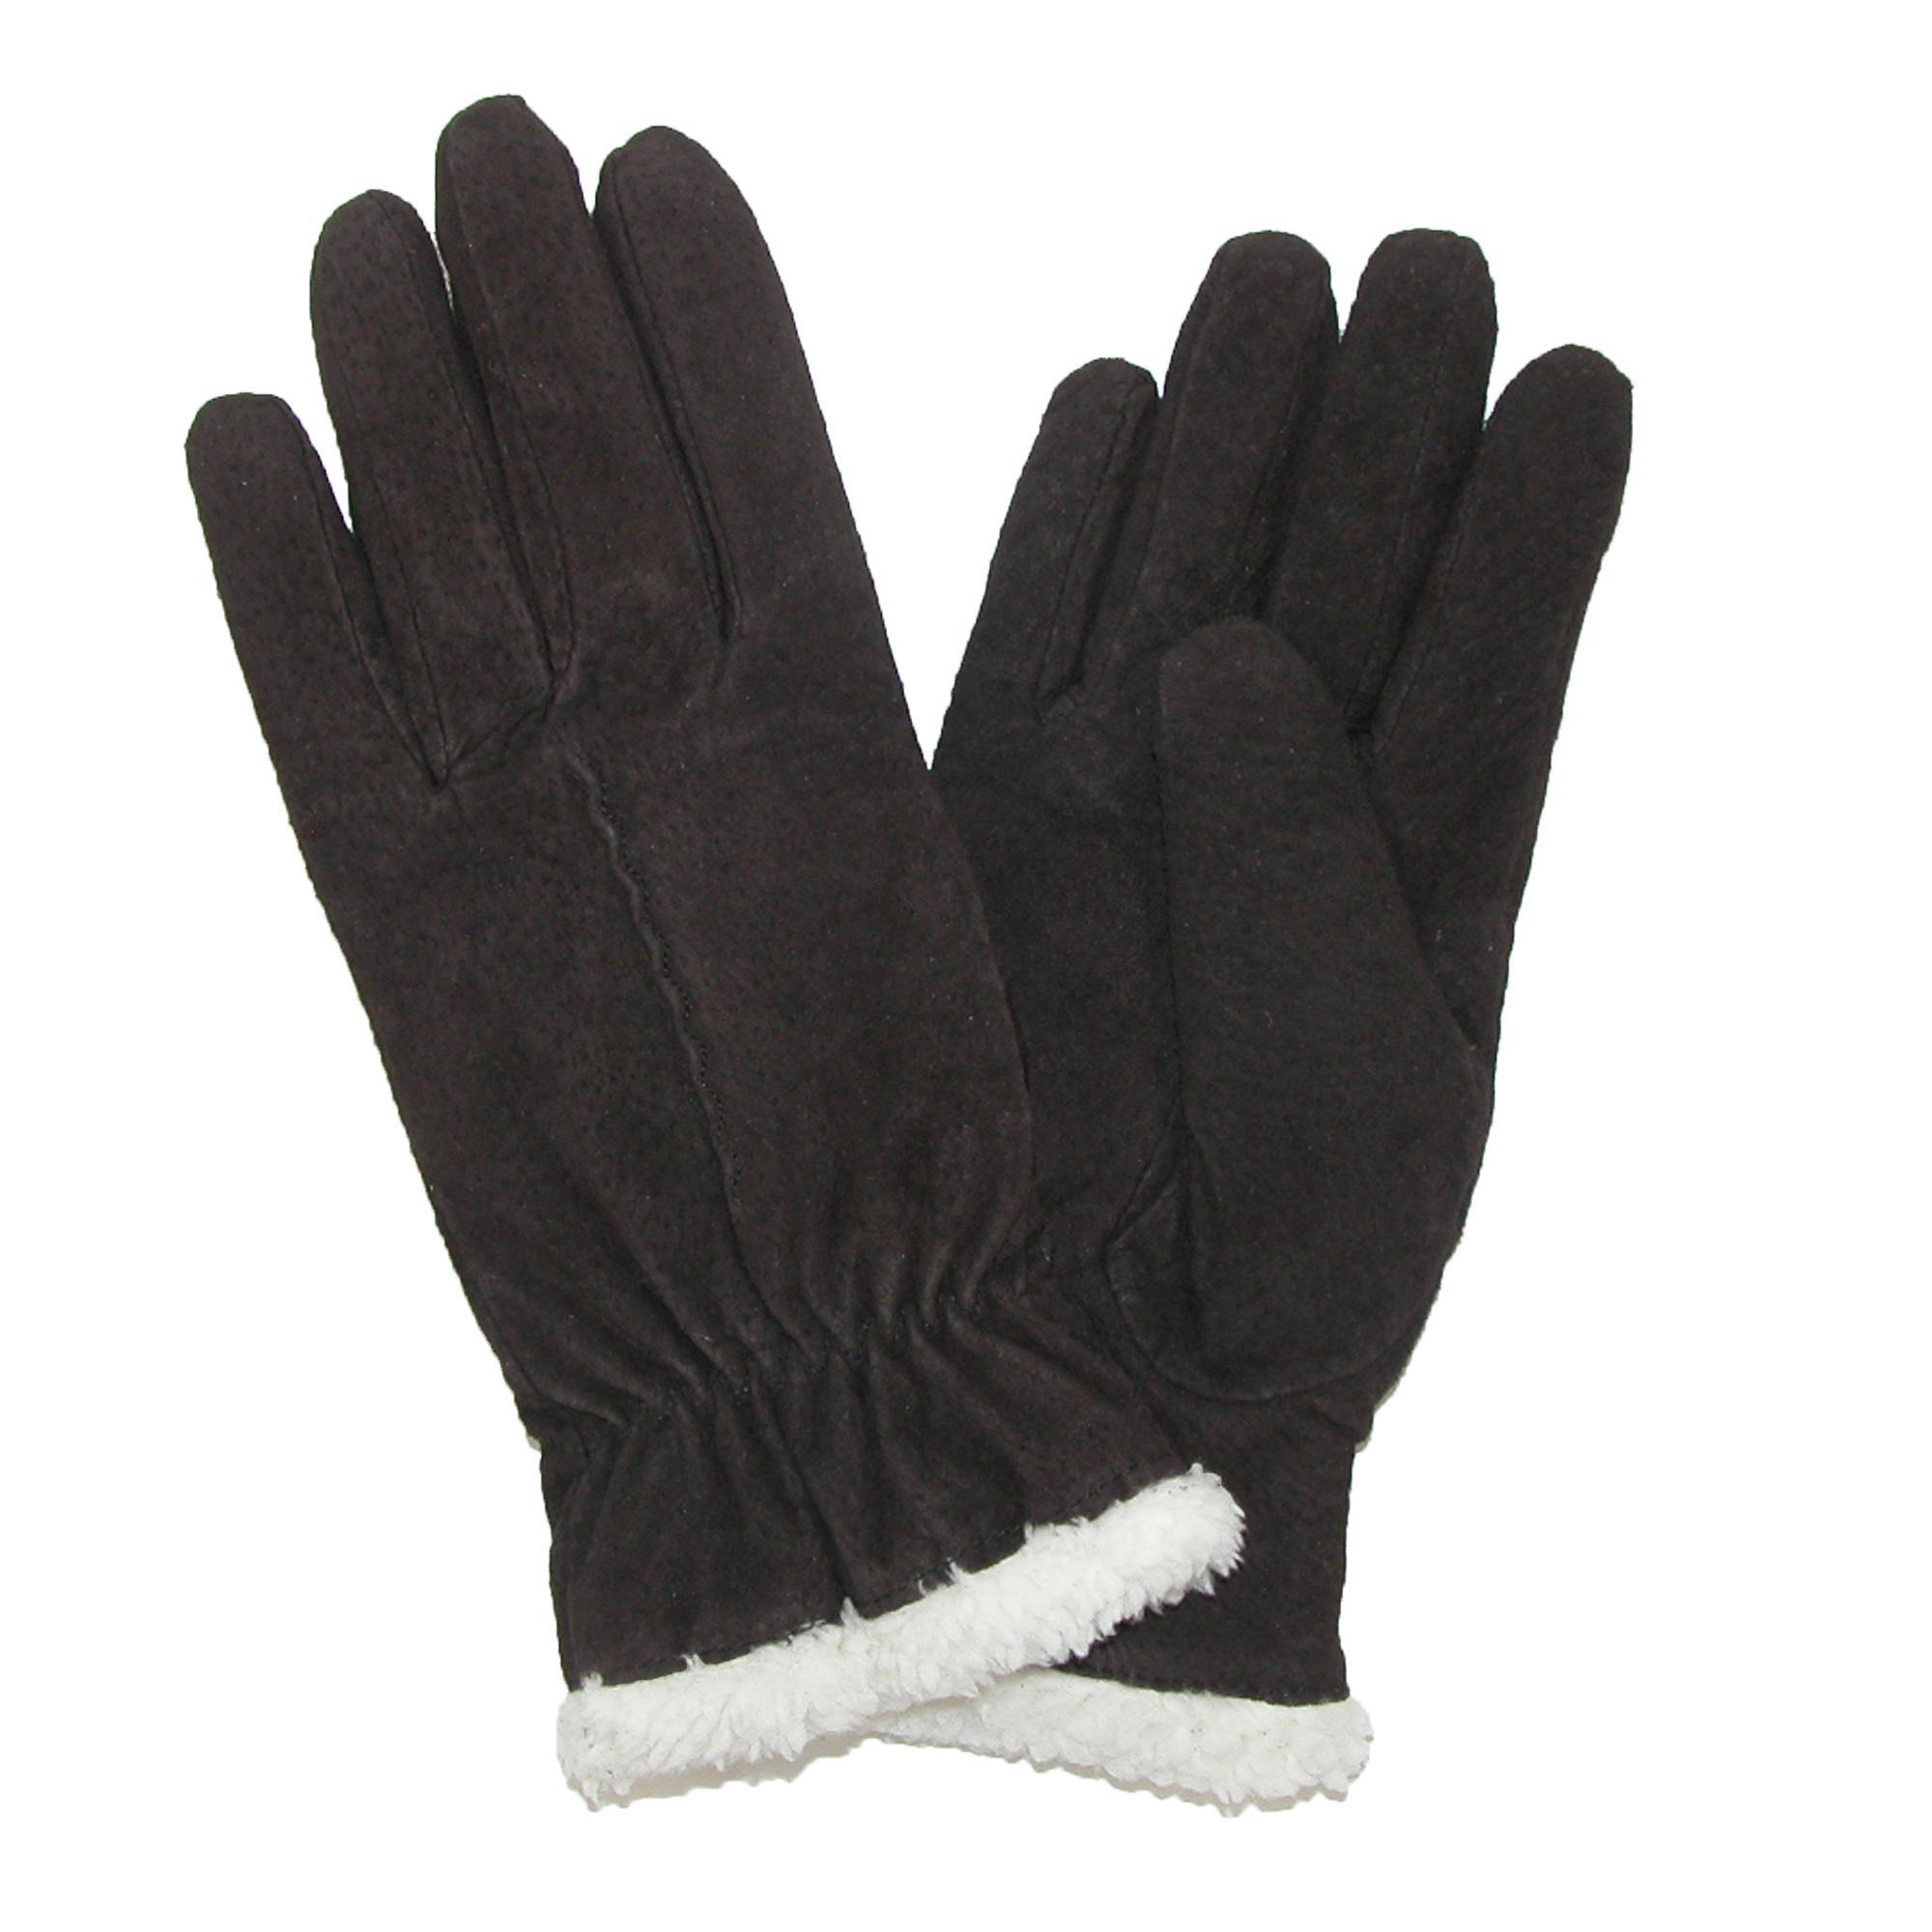 Isotoner womens leather gloves with fleece lining - Picture 6 Of 14